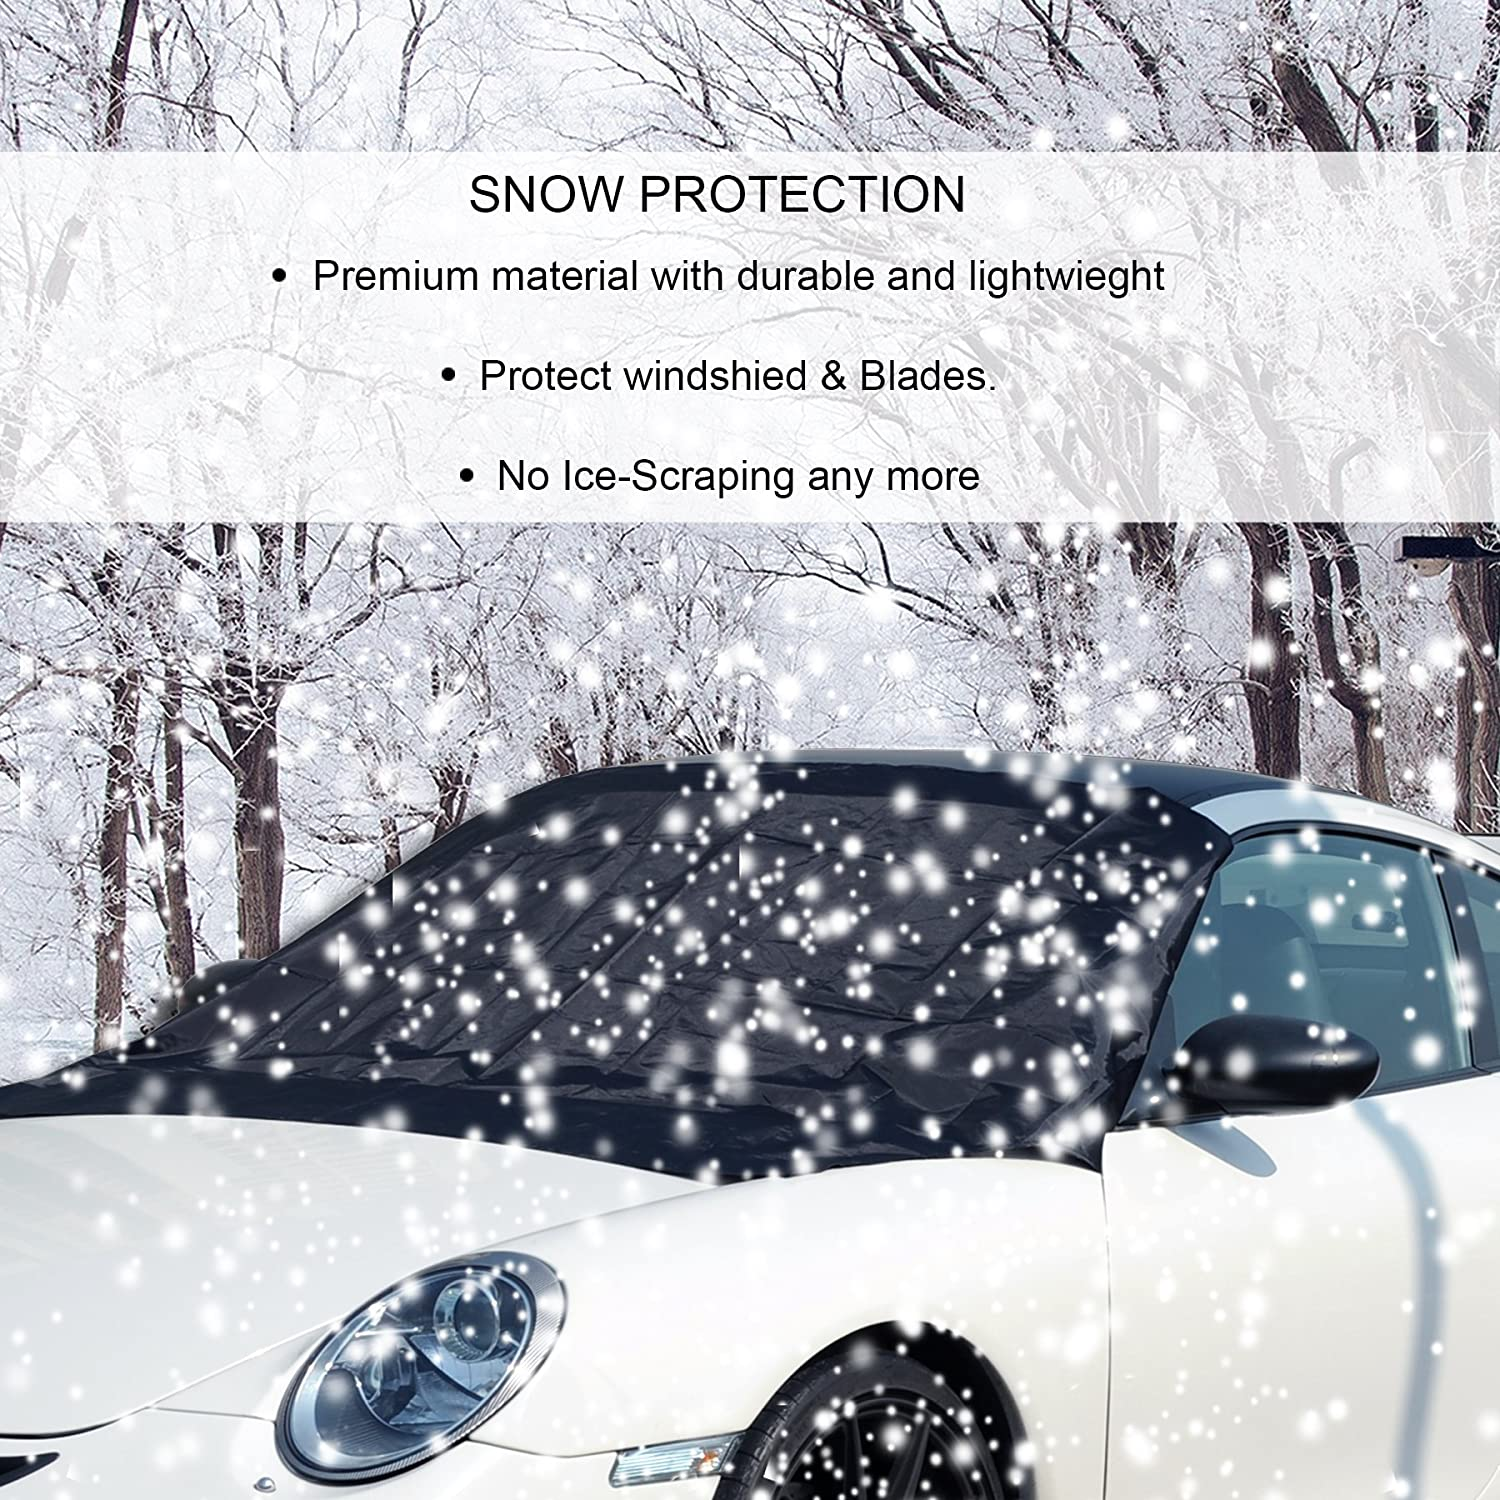 No Ice Scraping Waterproof Windproof Durable Material Outdoor Cover Fit All Cars 10 Magnets Standard Size 58x84 CARADDICTS Windshield Cover Ice Snow Magnetic Shade Frost Dust Rain Resistant 6S